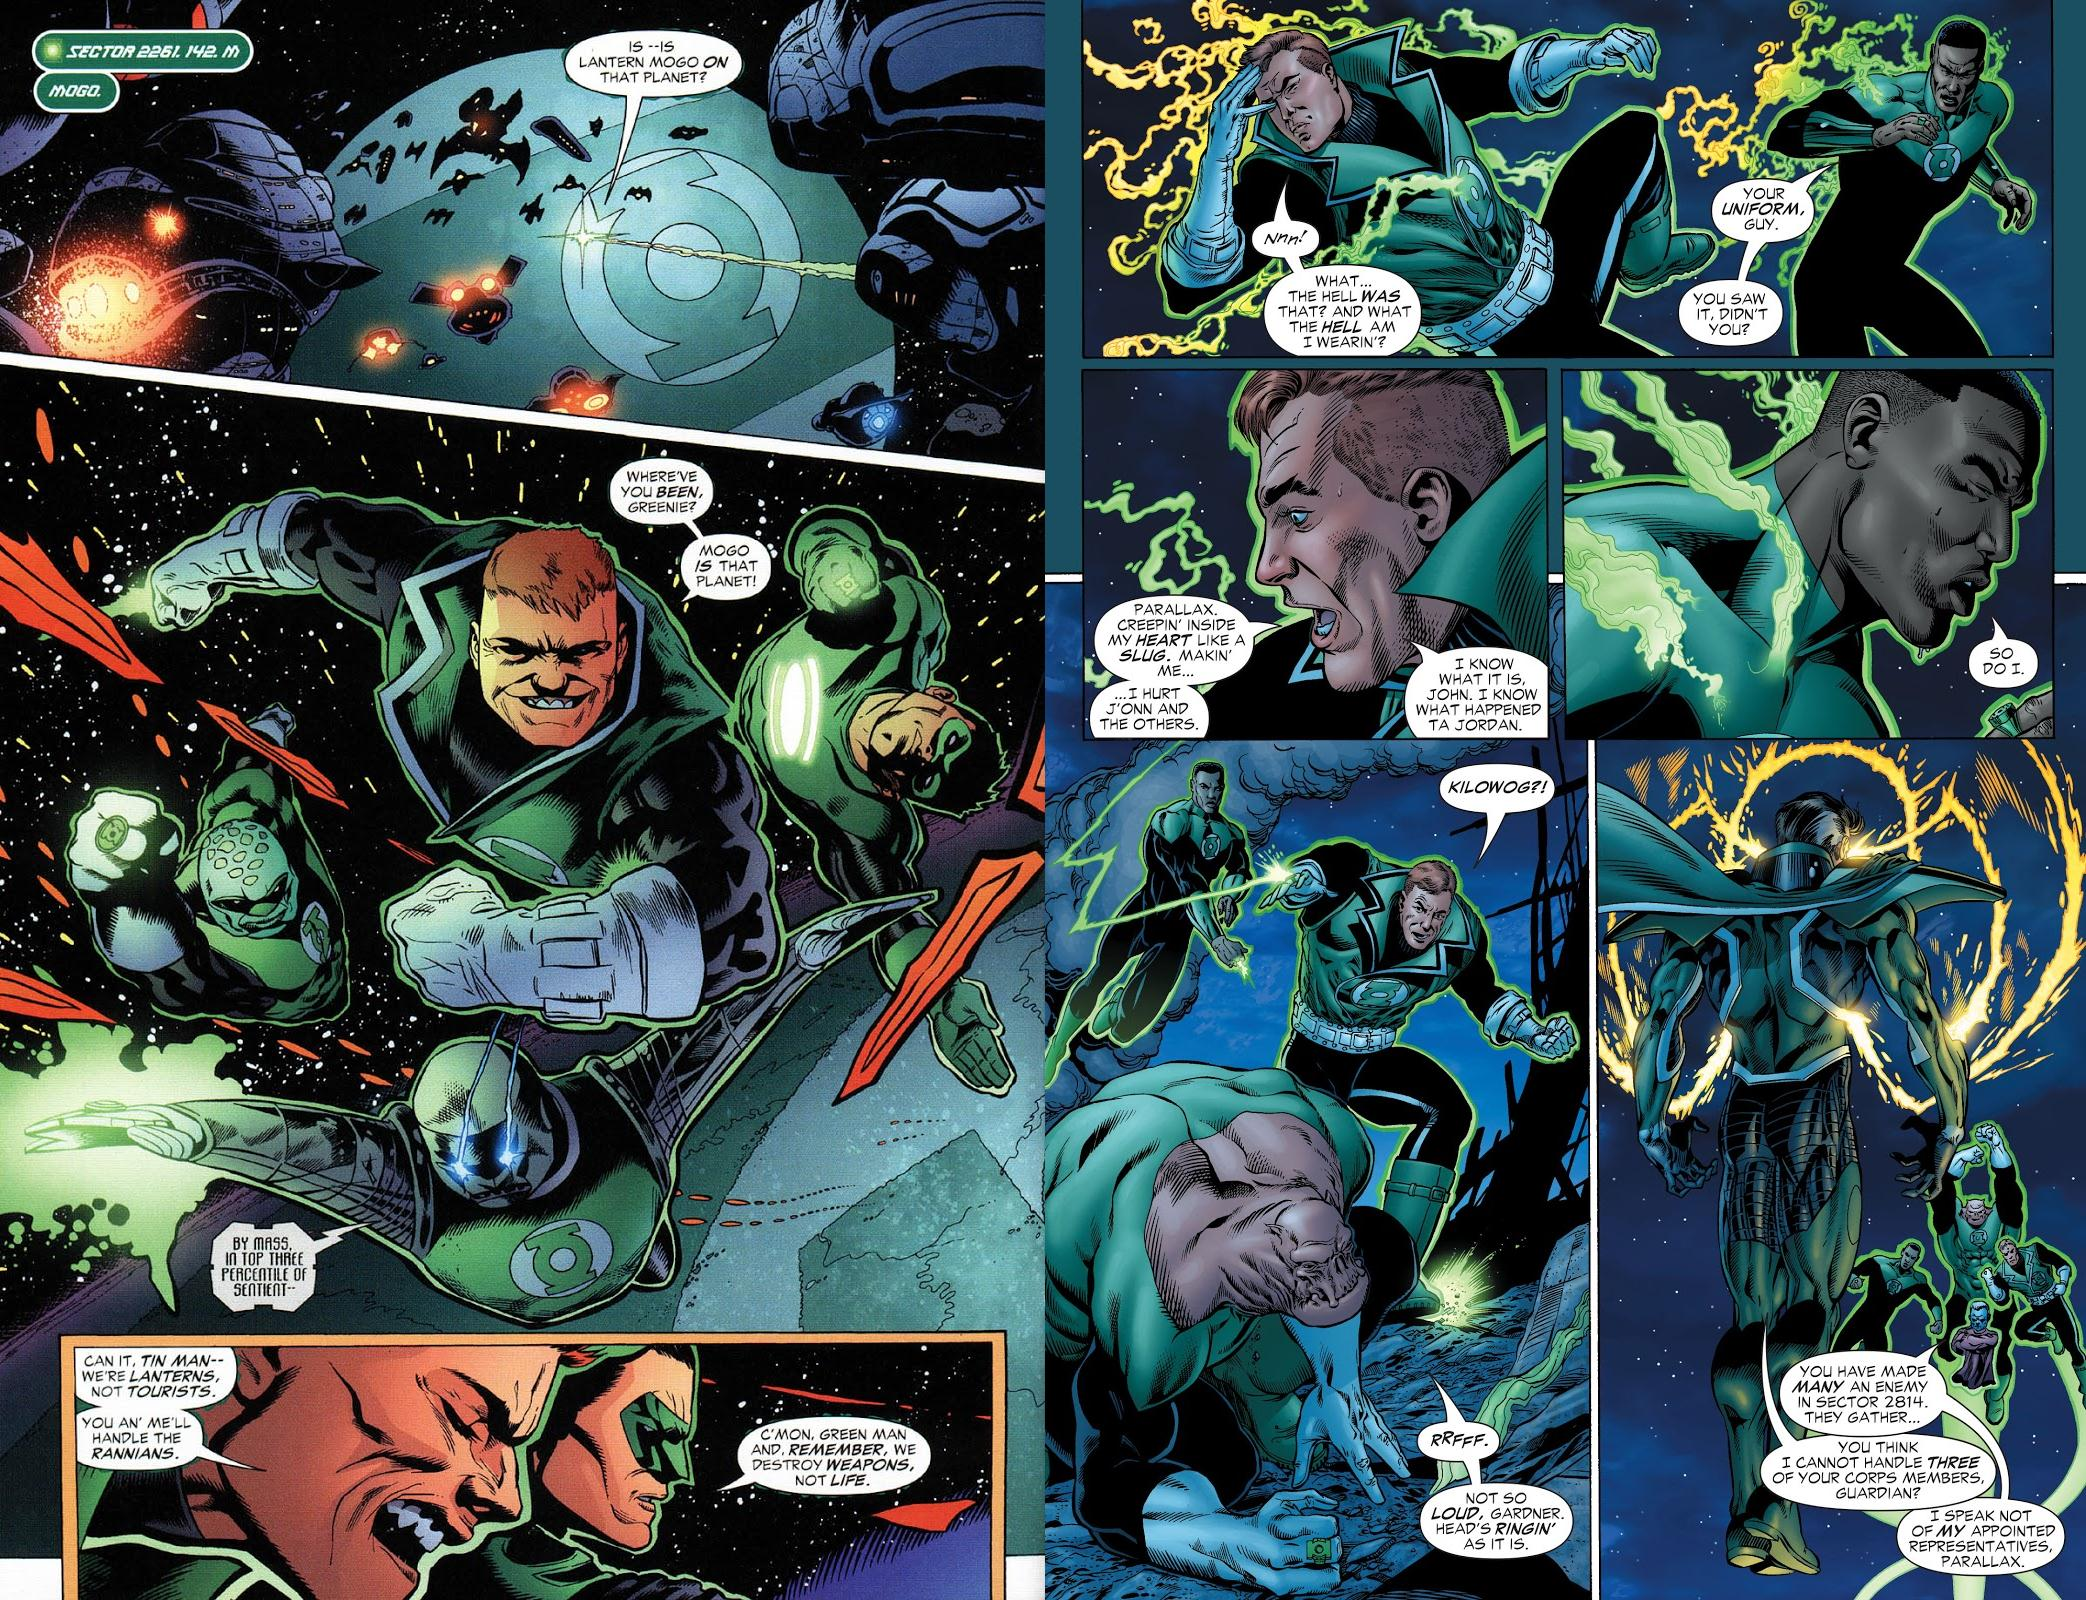 Green Lantern by Geoff Johns Book One review